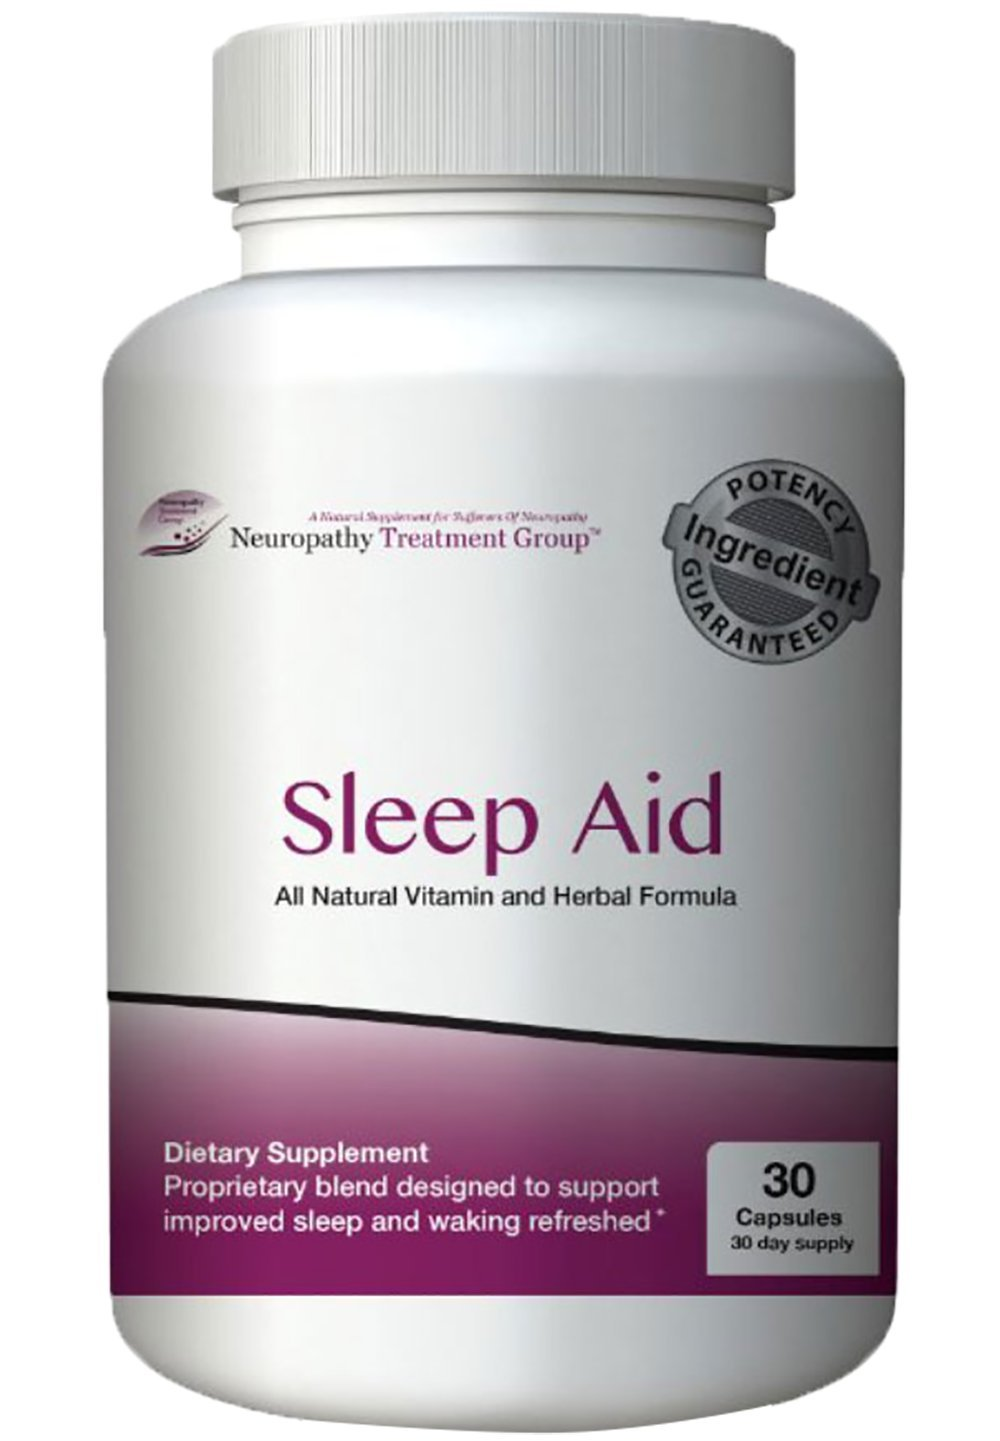 All-Natural Nerve Renew Sleep Aid- Works Fast - No Grogginess and Non-Habit Forming- Alternative Sleep Aid Supplement - 30 Day Supply